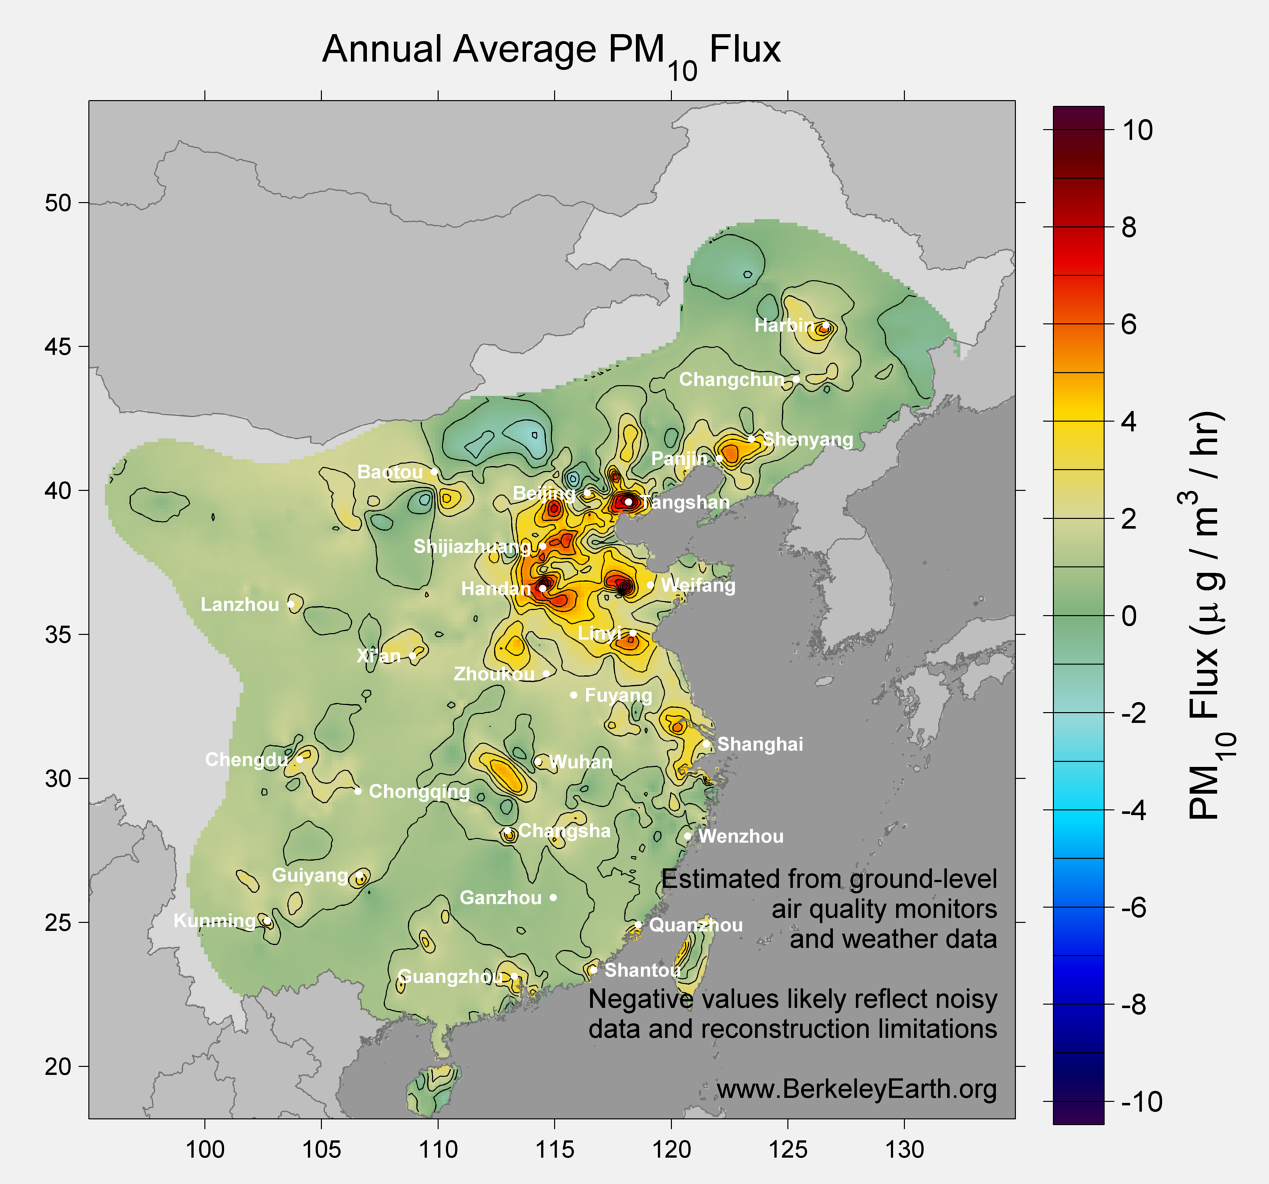 China_pm10_Average_Flux_Map